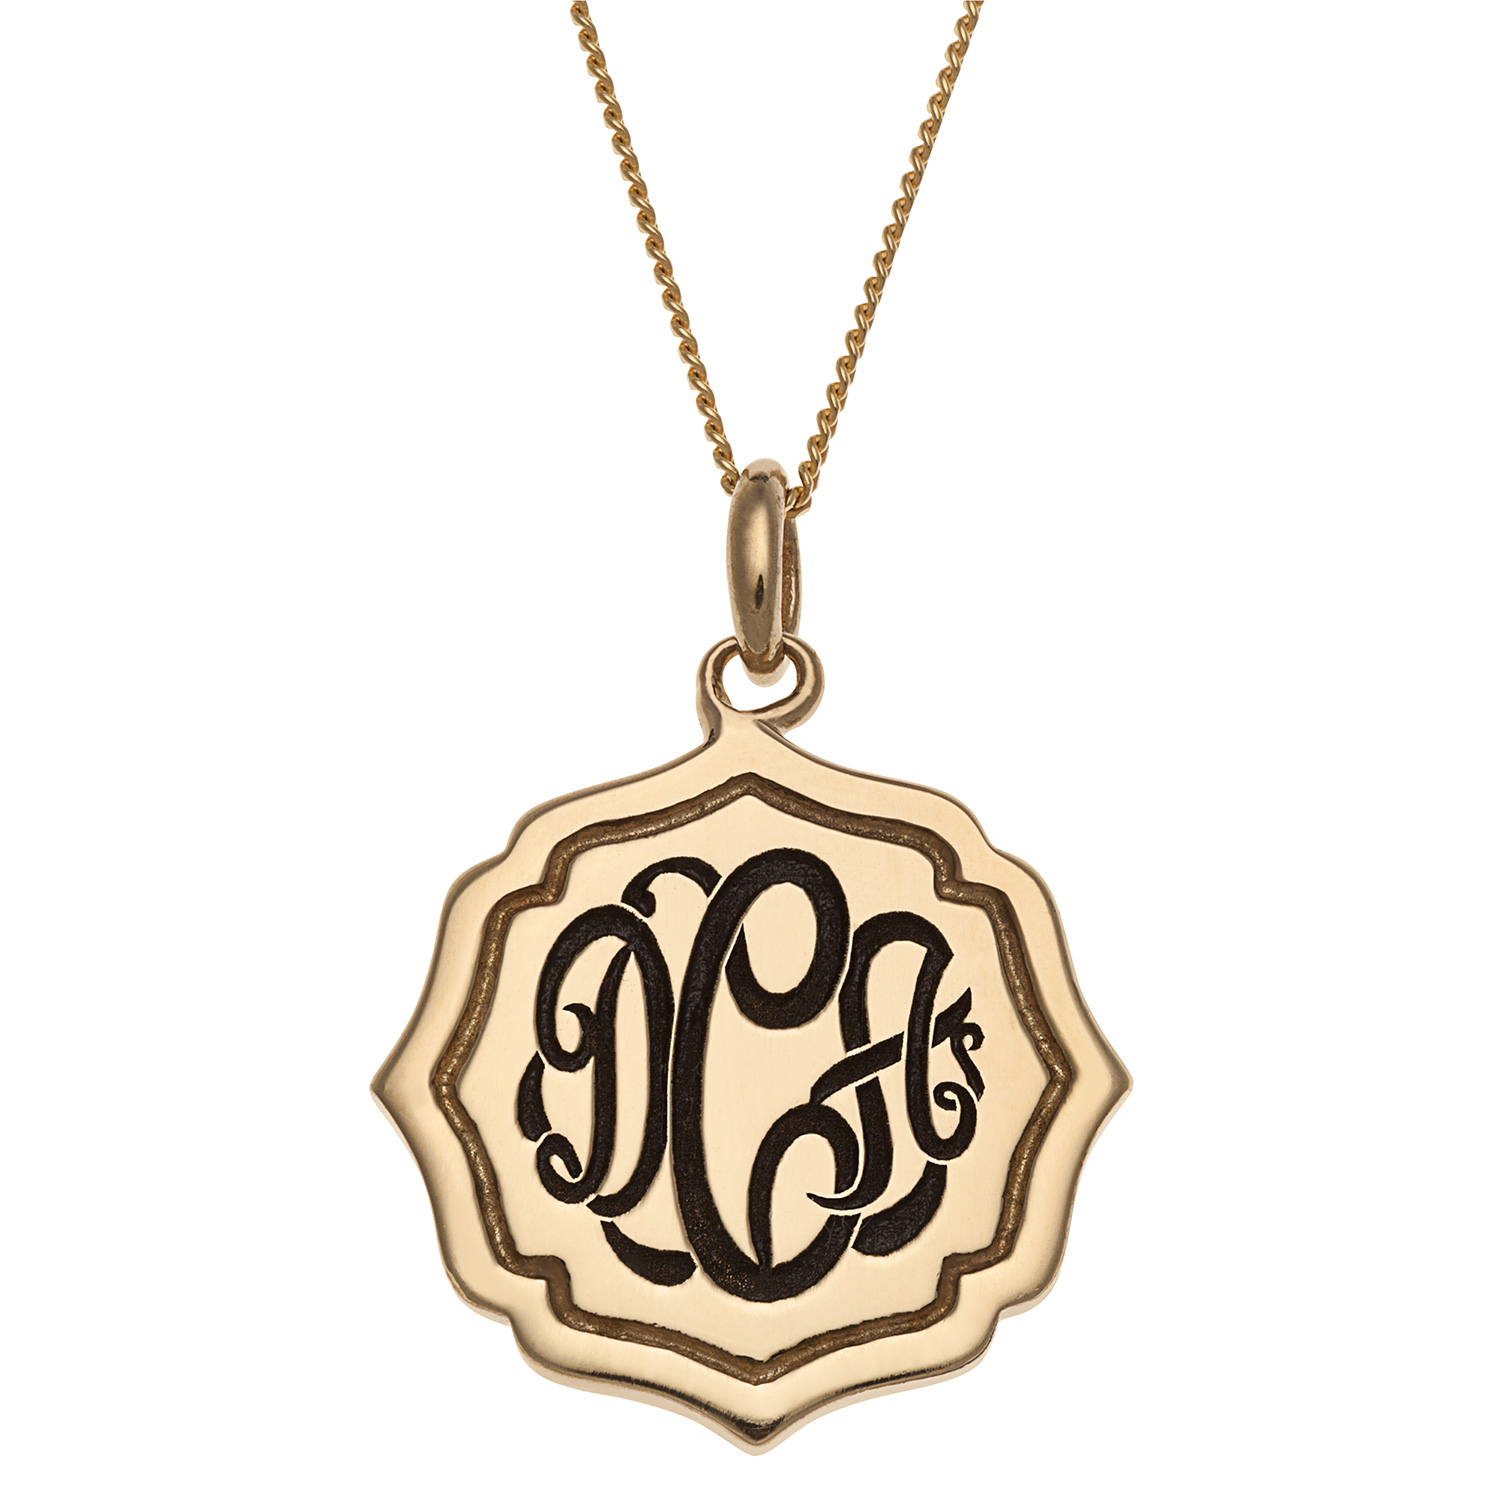 Personalized Women's Sterling Silver or Gold over Silver Monogram Medallion Necklace, 18""